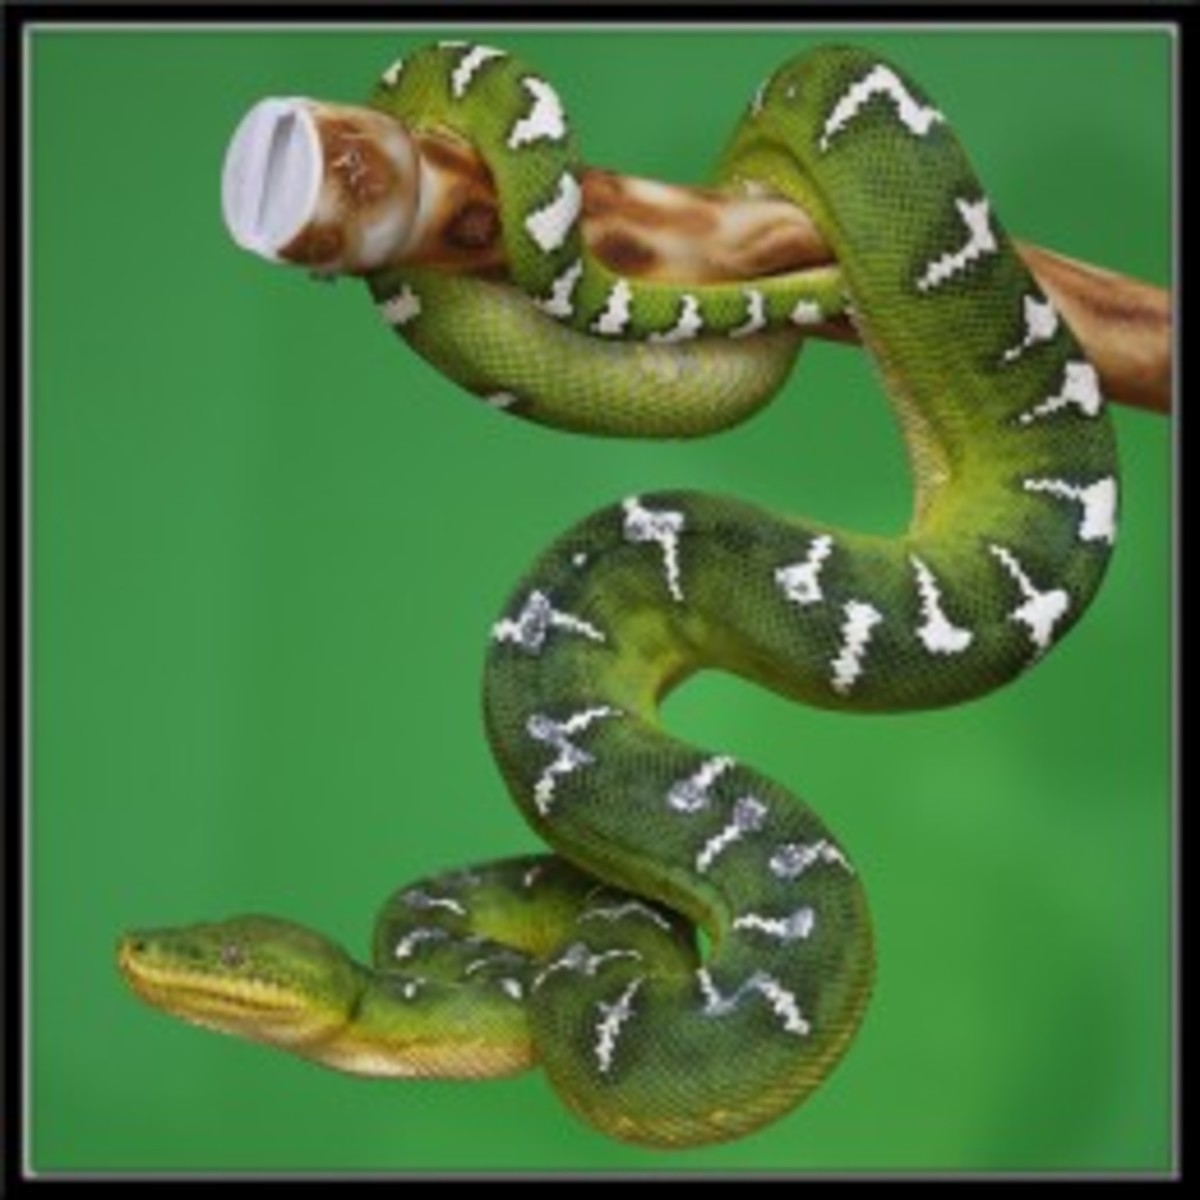 The Emerald Tree Boa is one of our top 10 most amazing snakes on earth. Its also one of the most beautiful snakes on earth.